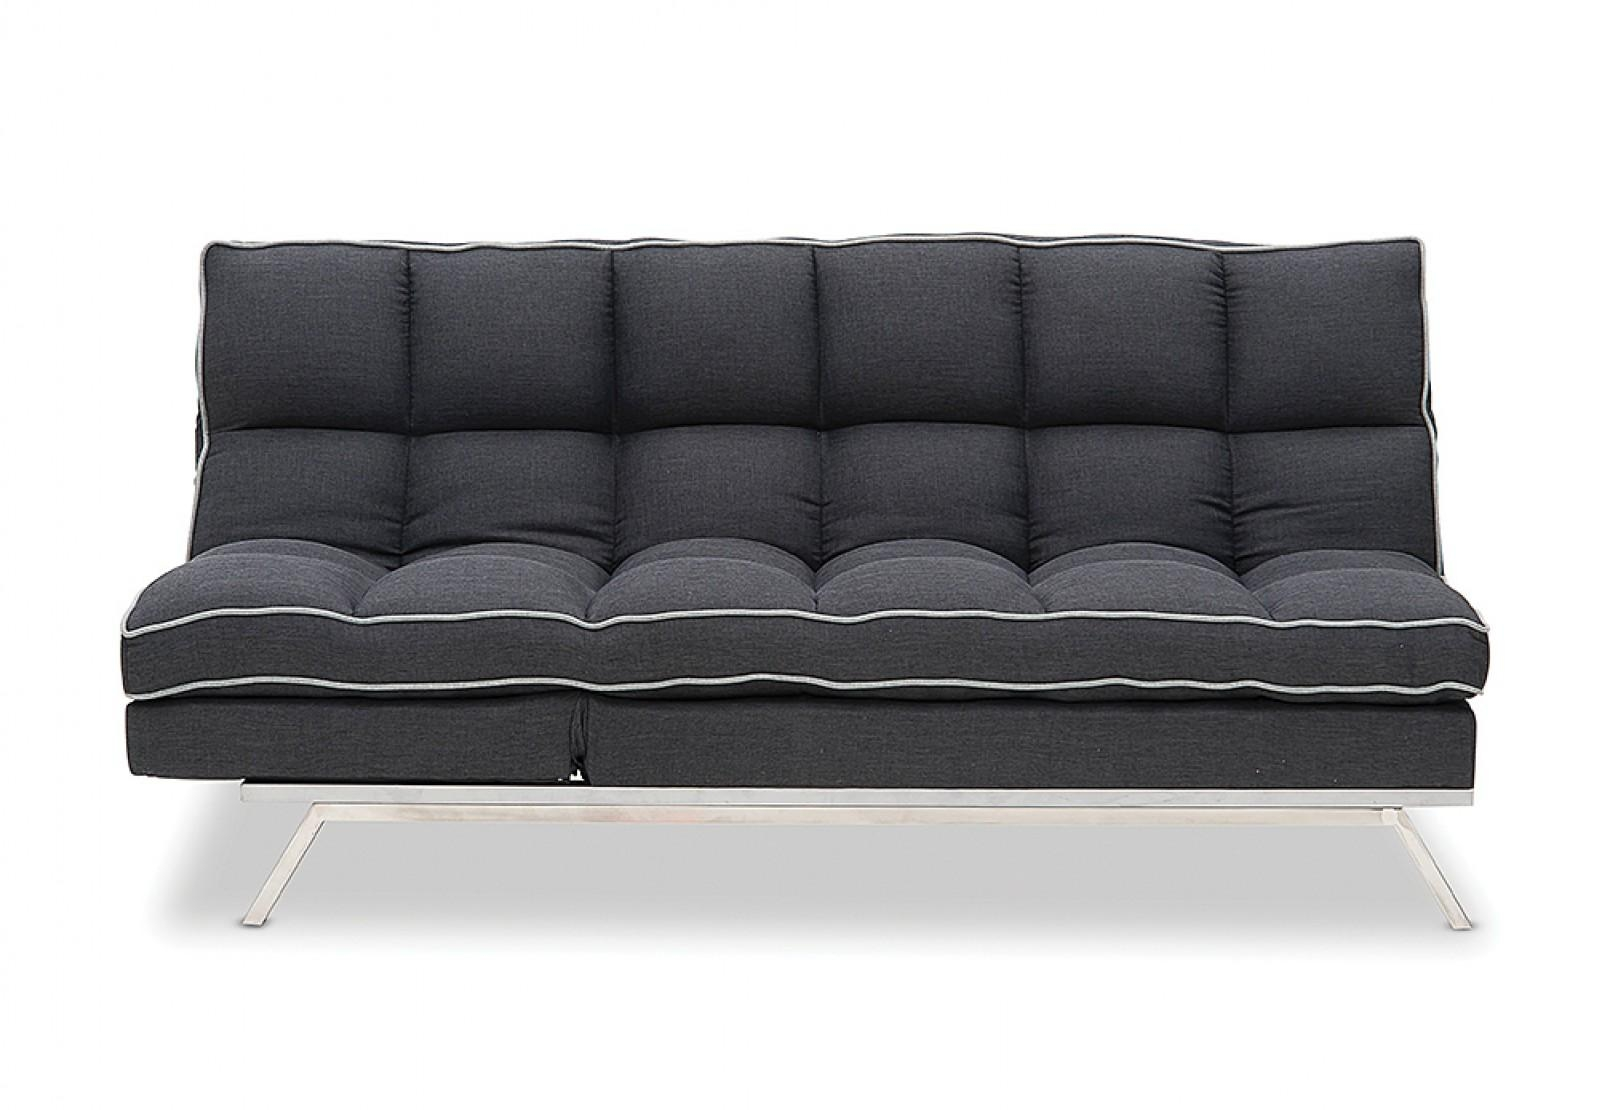 Furniture Home : Luca Sofa Beddesign Woll Sofa Beds Large Small Regarding Luxury Sofa Beds (View 13 of 20)